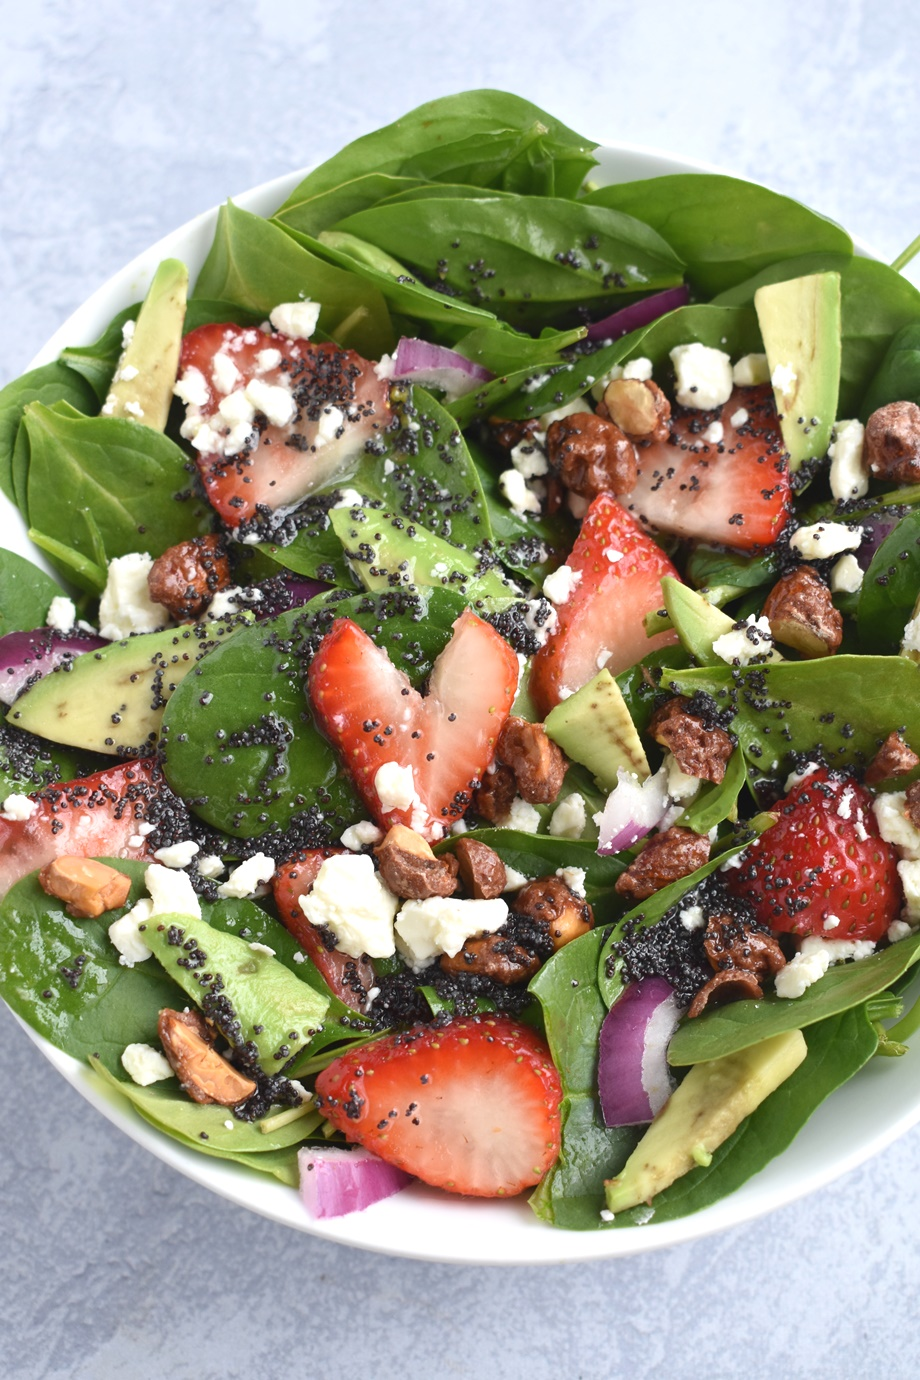 Strawberry Spinach salad poppy seed dressing